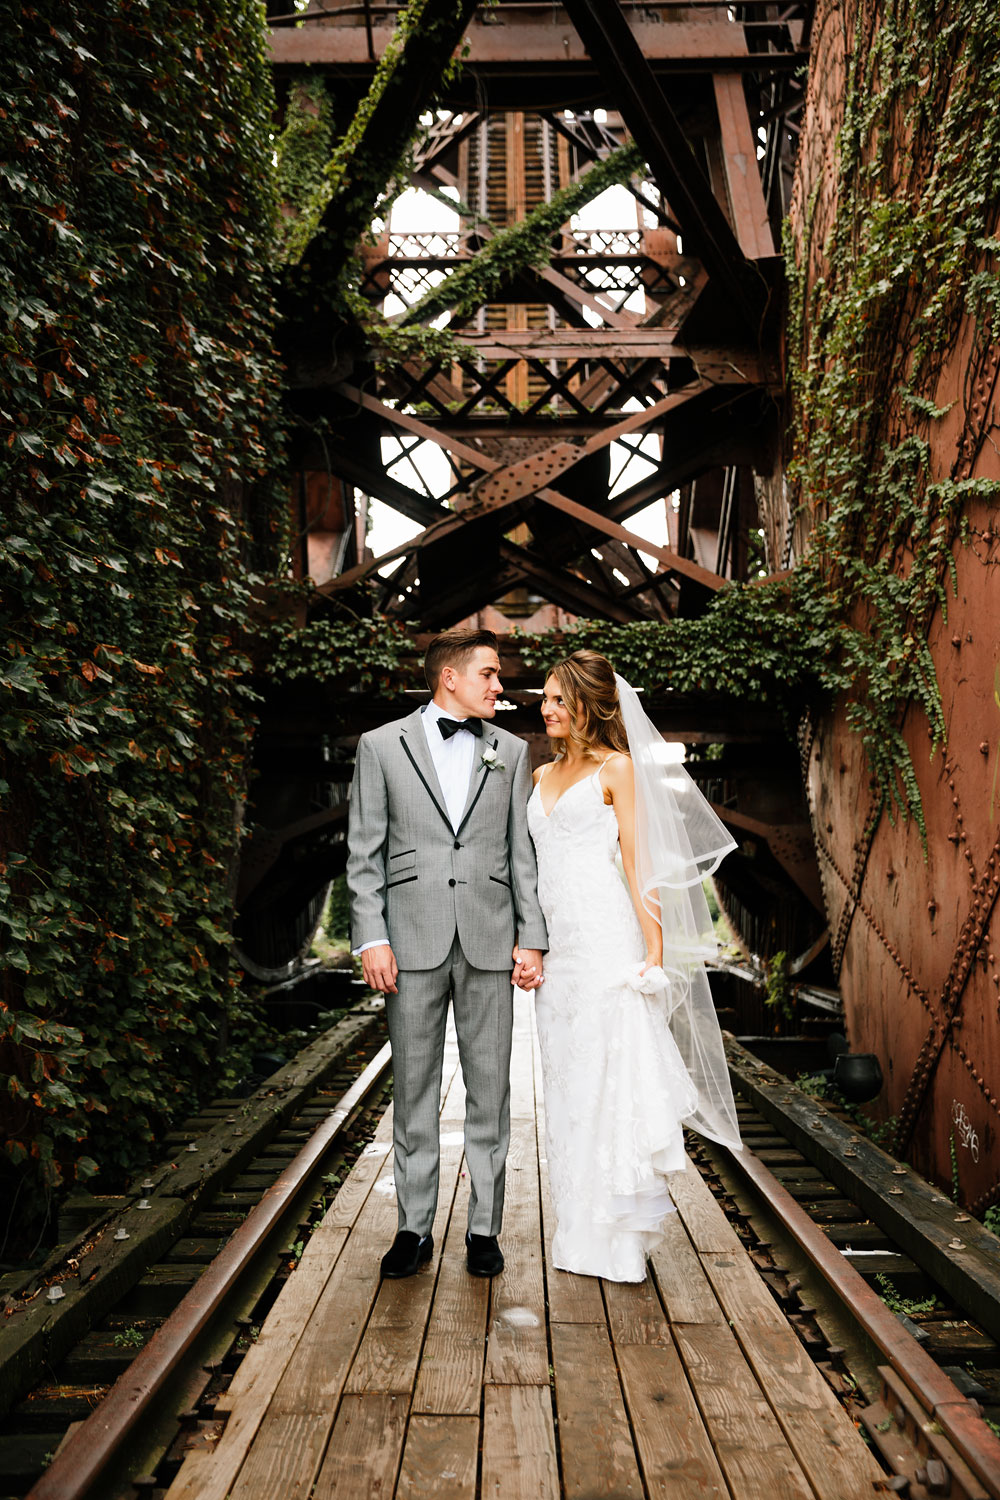 tenk-west-bank-flats-photography-wedding-photographers-in-cleveland-downtown-industrial-91.jpg